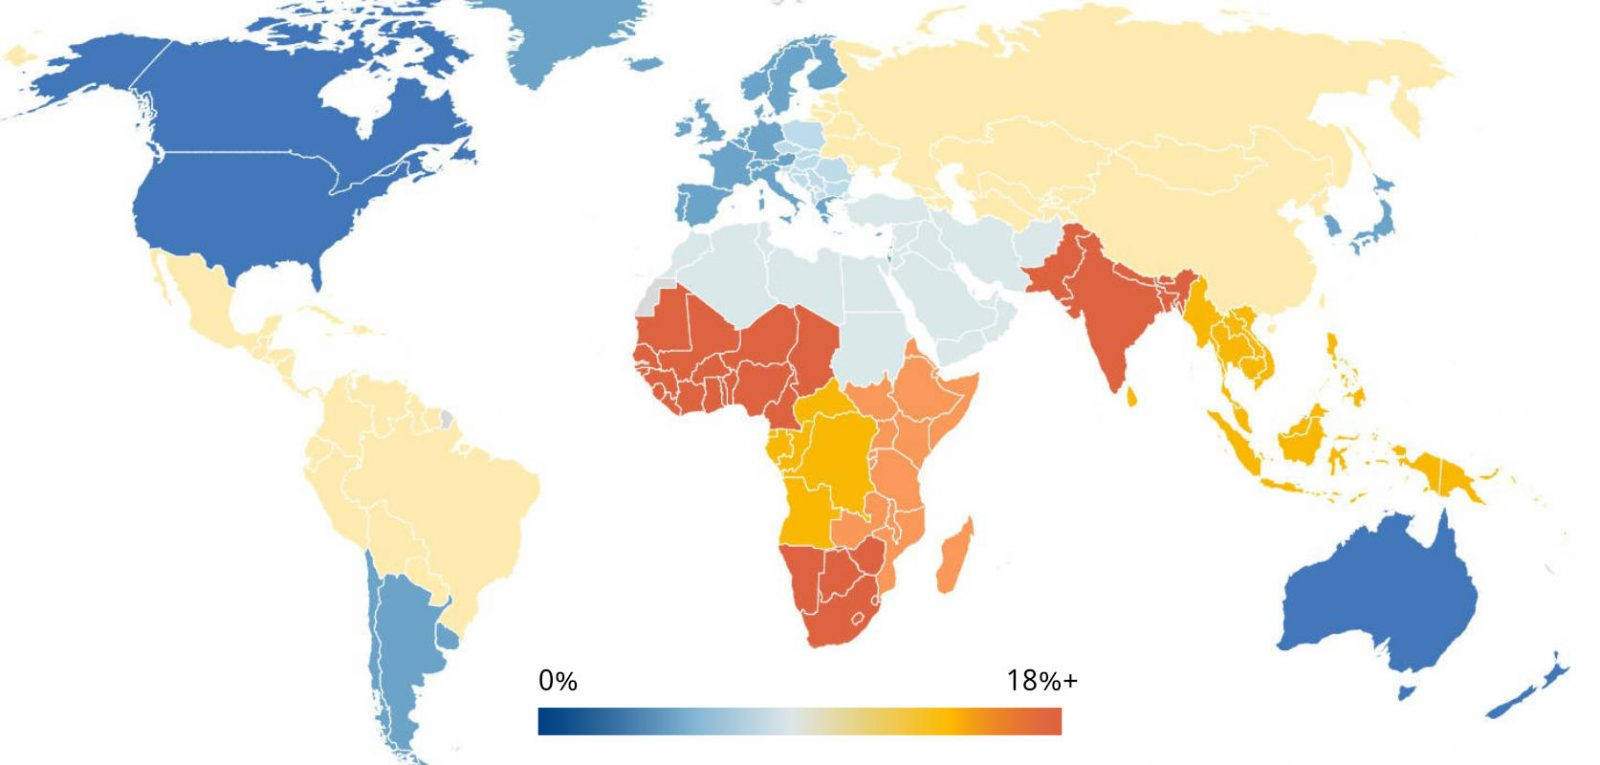 Map of world showing rates of vision loss, high in Africa and South Asia